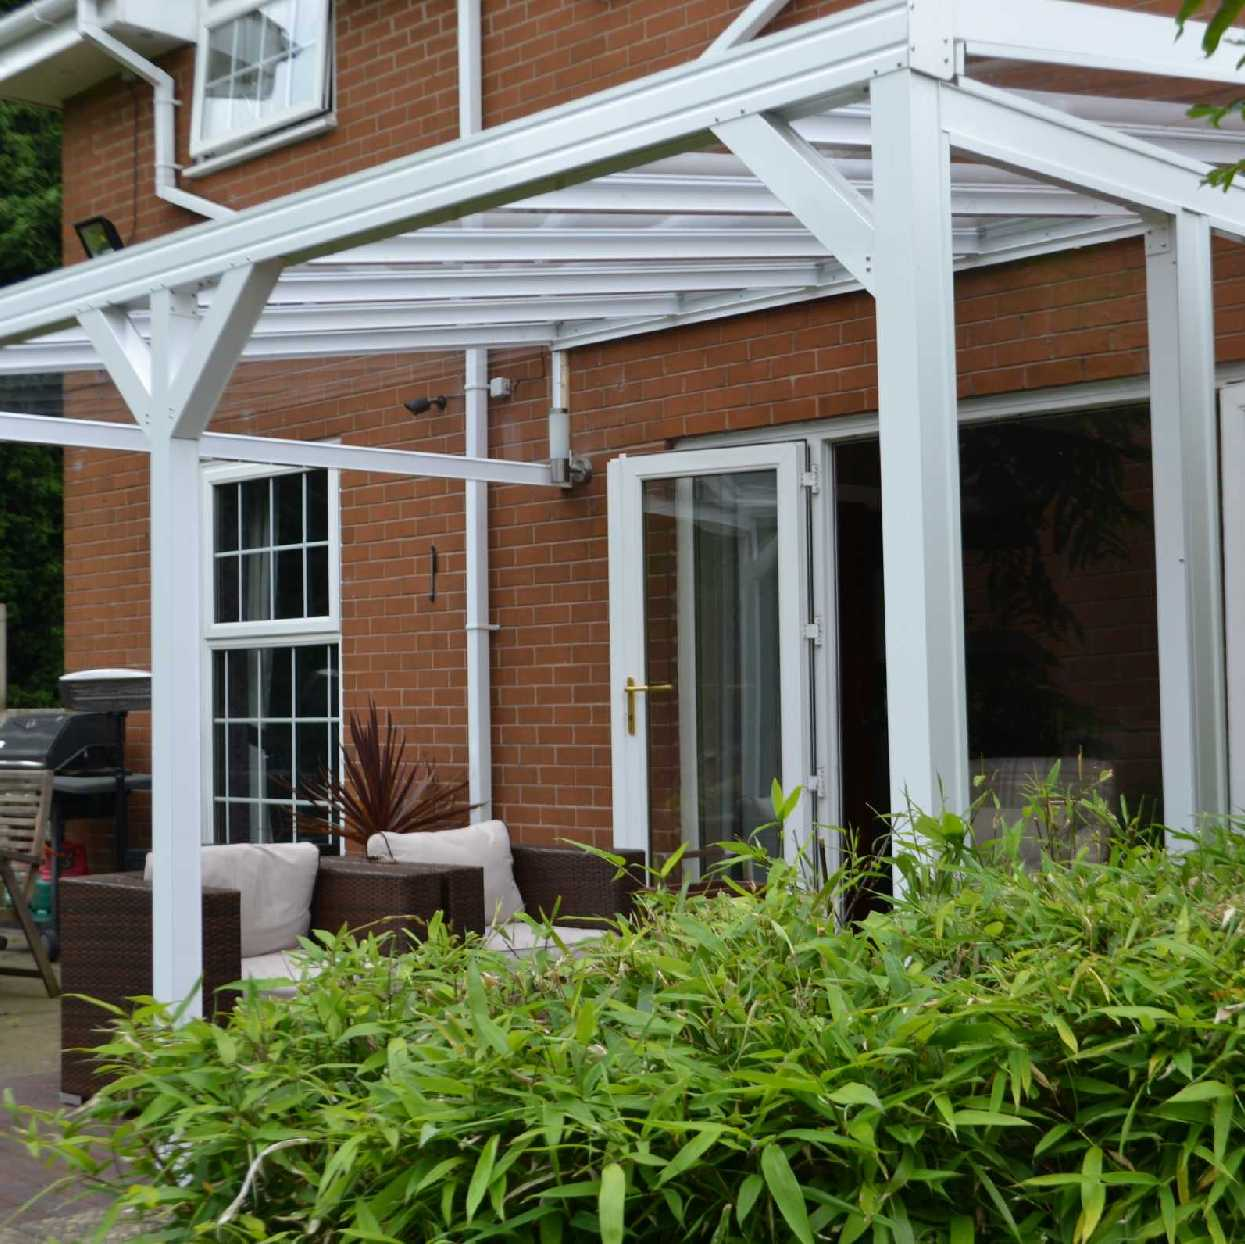 Omega Smart White Lean-To Canopy with 6mm Glass Clear Plate Polycarbonate Glazing - 7.7m (W) x 2.5m (P), (4) Supporting Posts from Omega Build